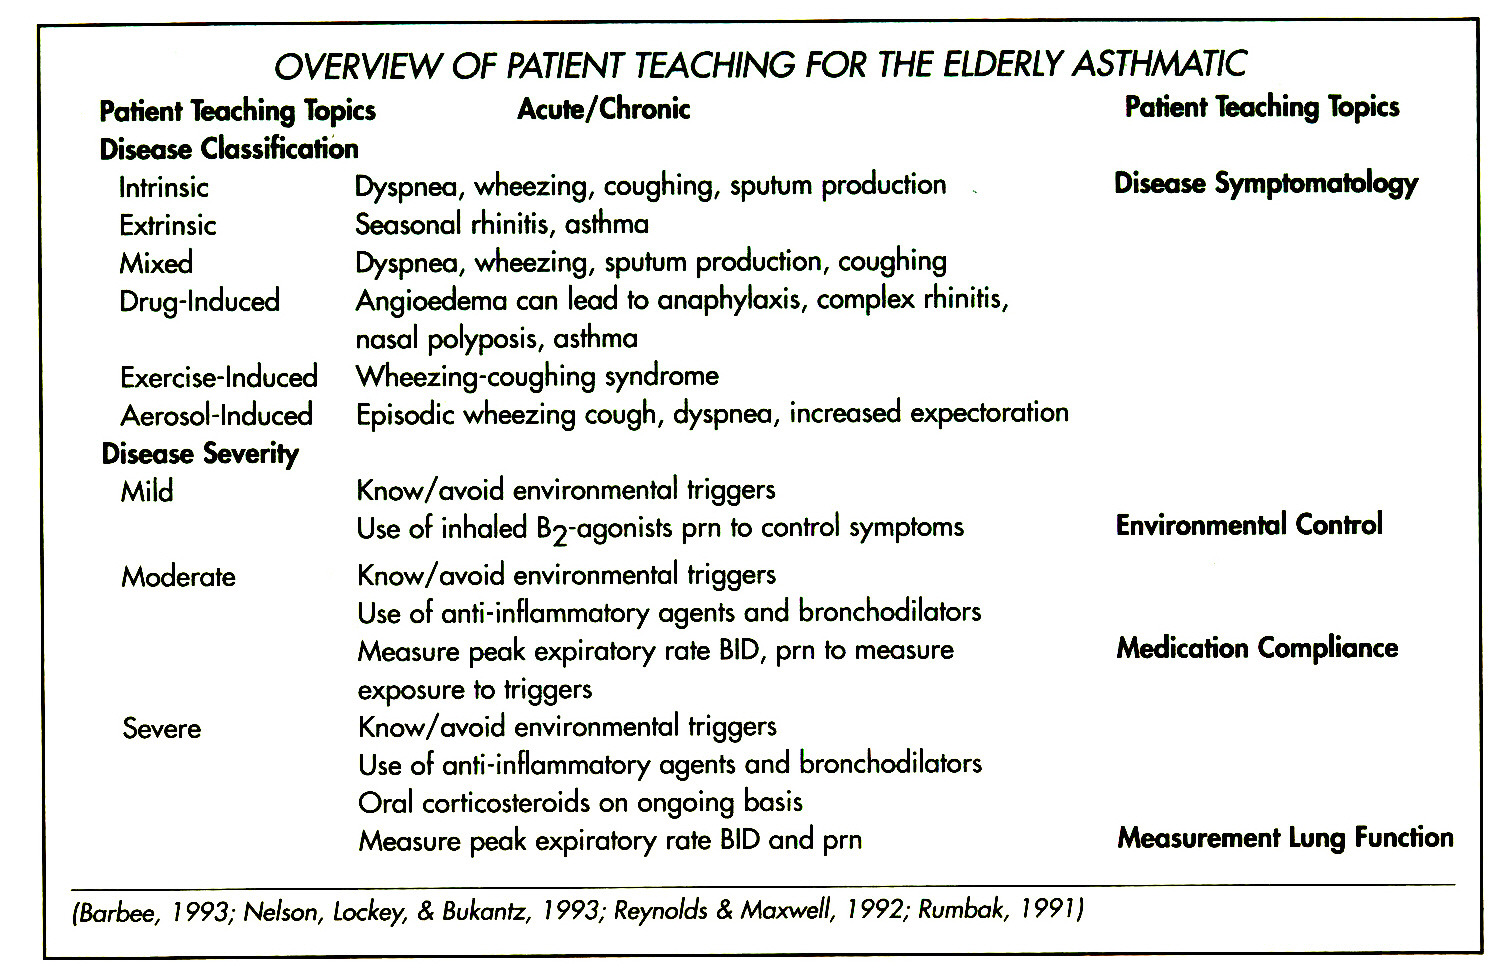 OVERVIEW OF PATIENT TEACHING FOR THE ELDERLYASTHMATlC